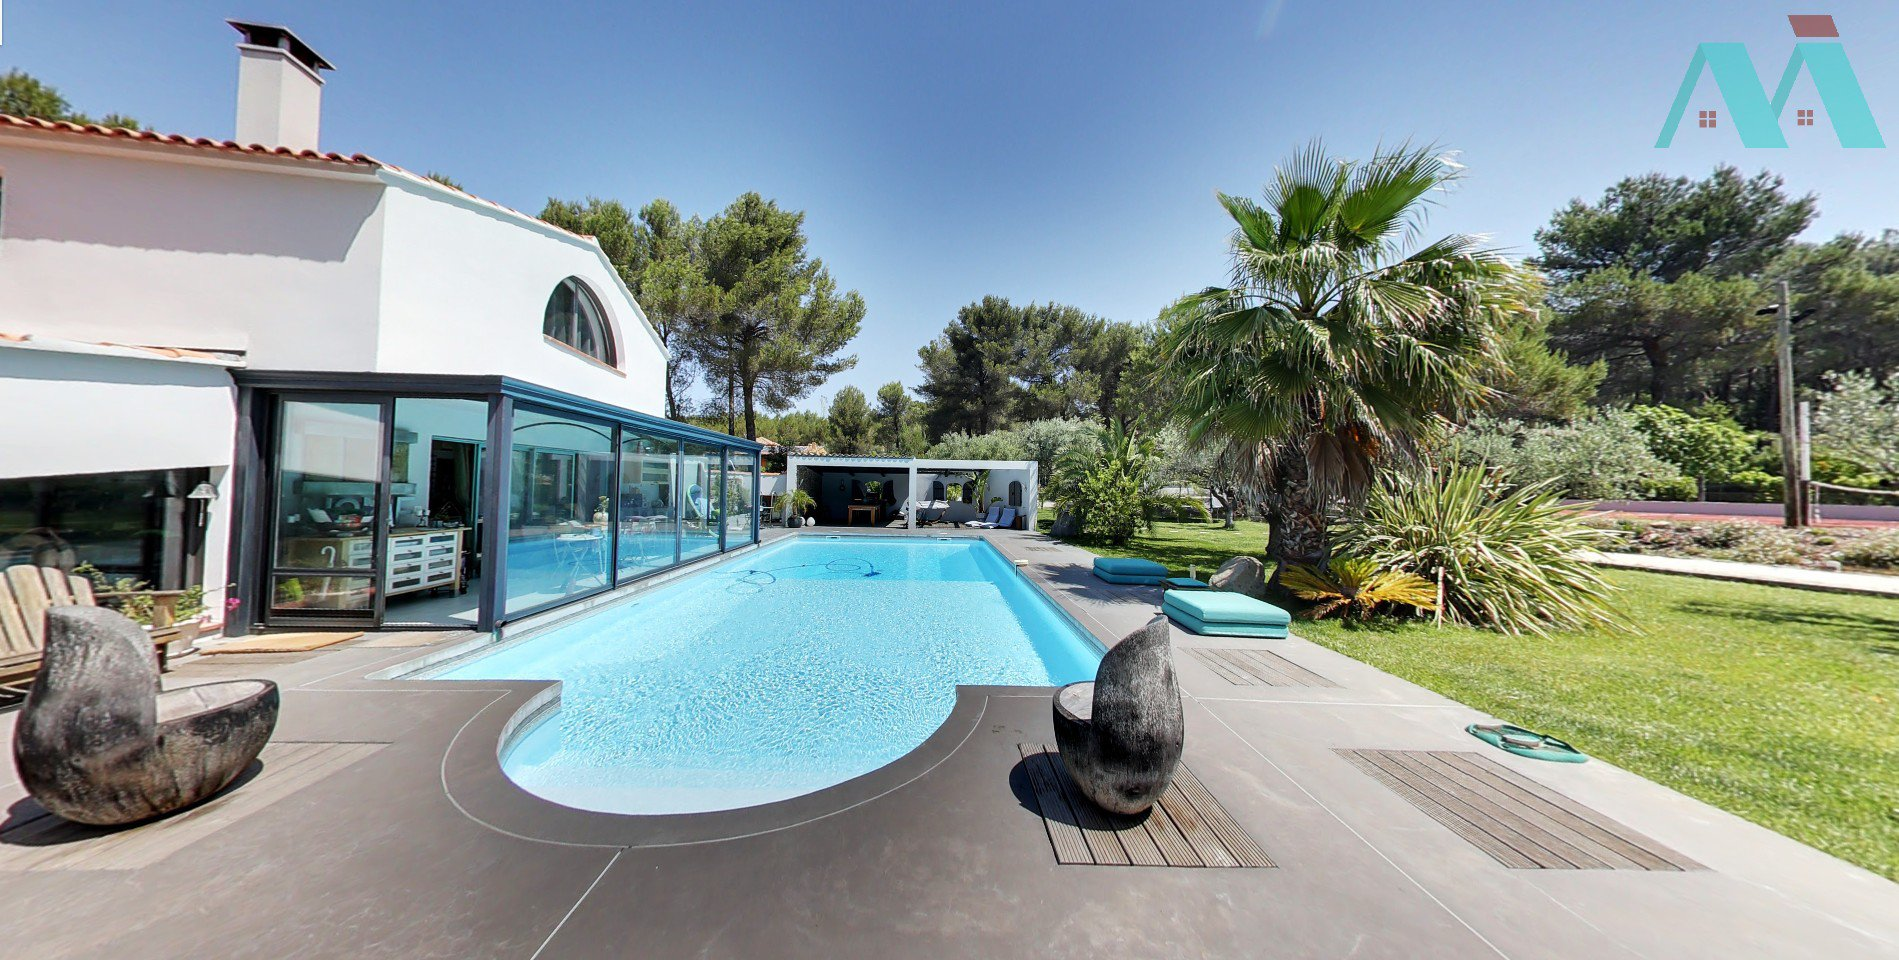 Le Beausset, a lovely property at 10 minutes from the seaside